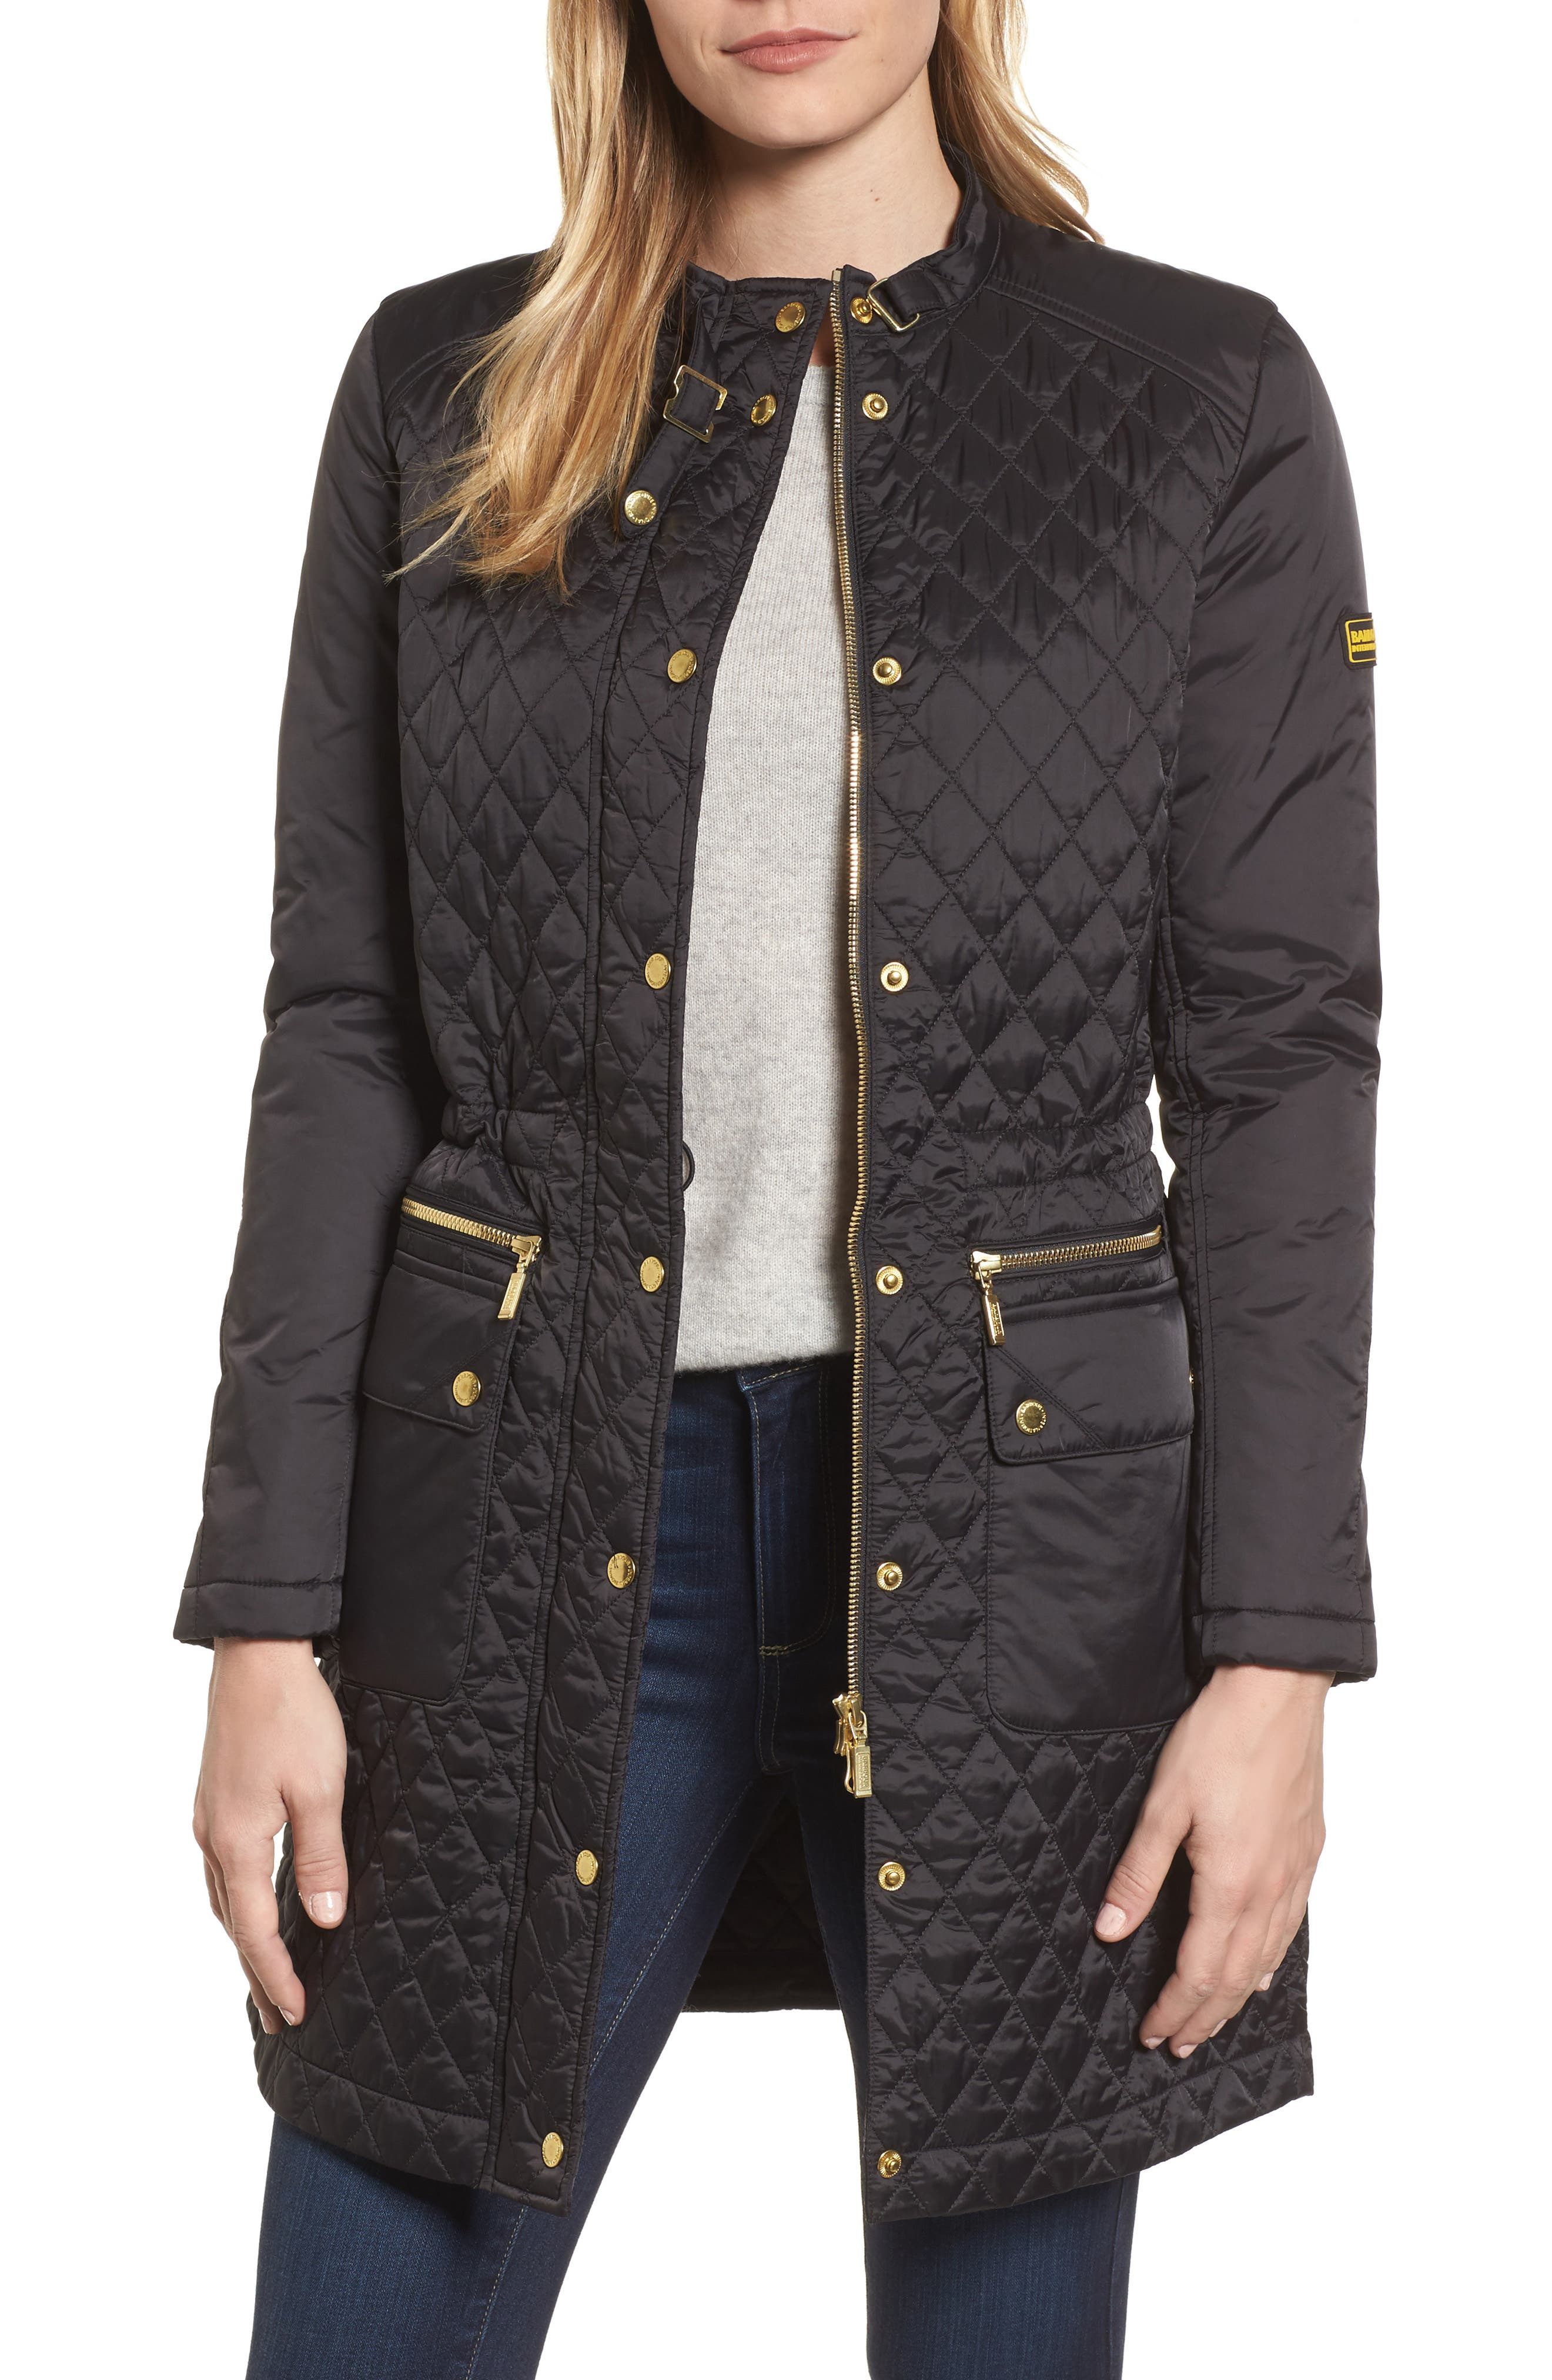 Women's Barbour Quilted Jackets | Nordstrom : barbour quilted waxed jacket - Adamdwight.com